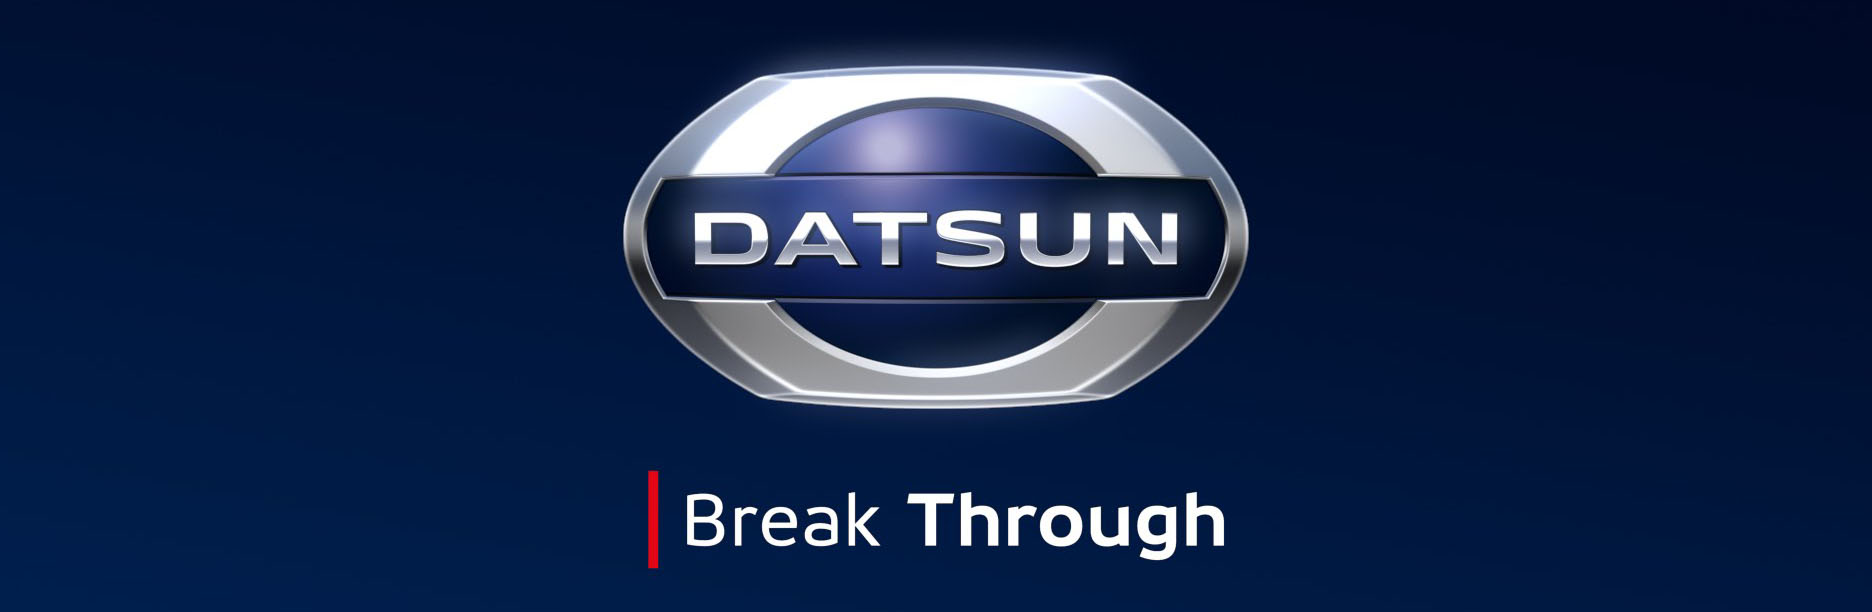 Is Datsun Brand Doomed to be Axed? 6